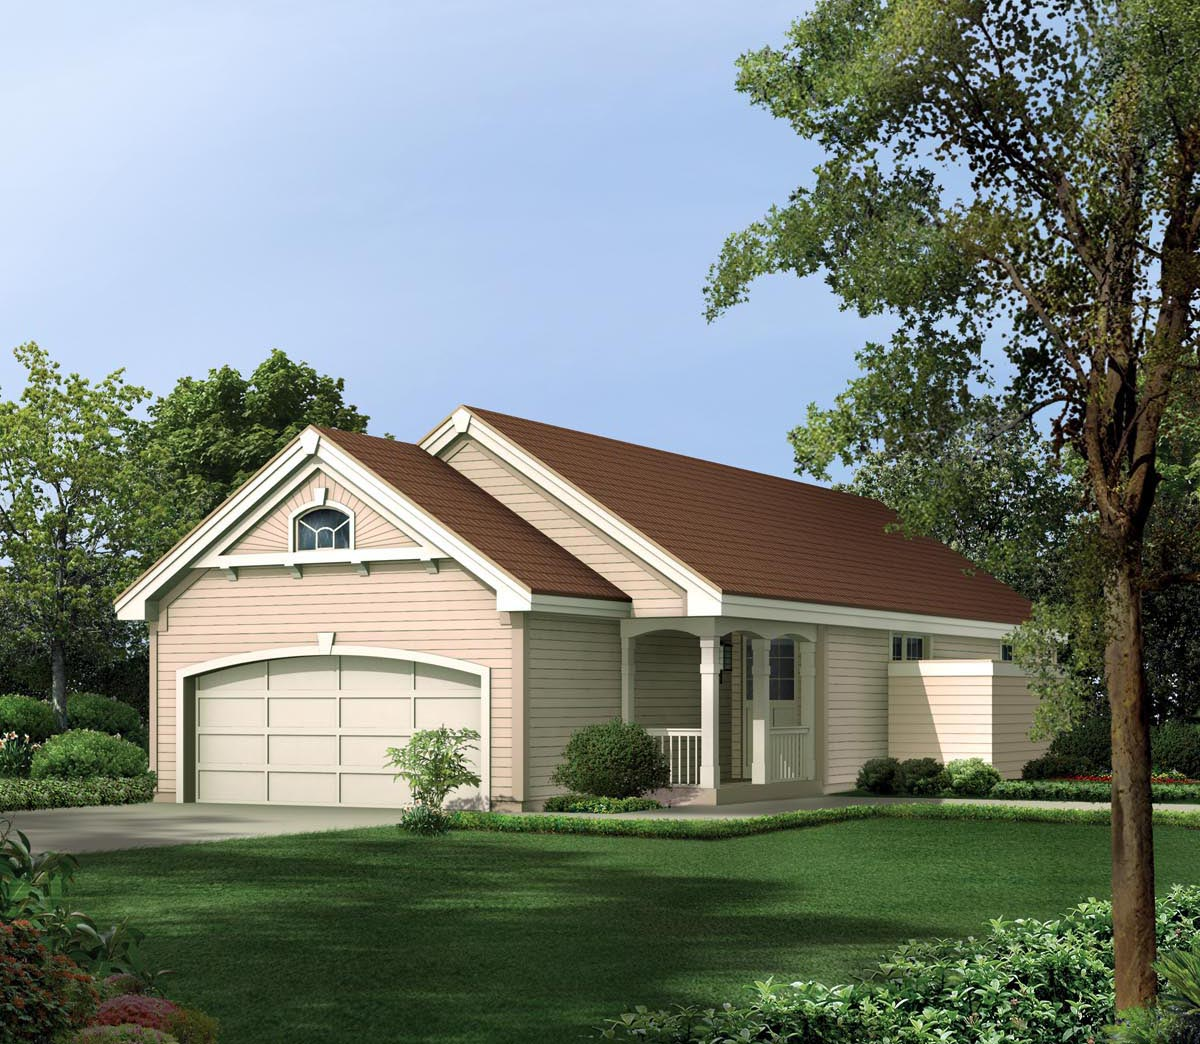 Small House Plans With 3 Car Garage 25 Best Ideas About House Plans On Pinterest House